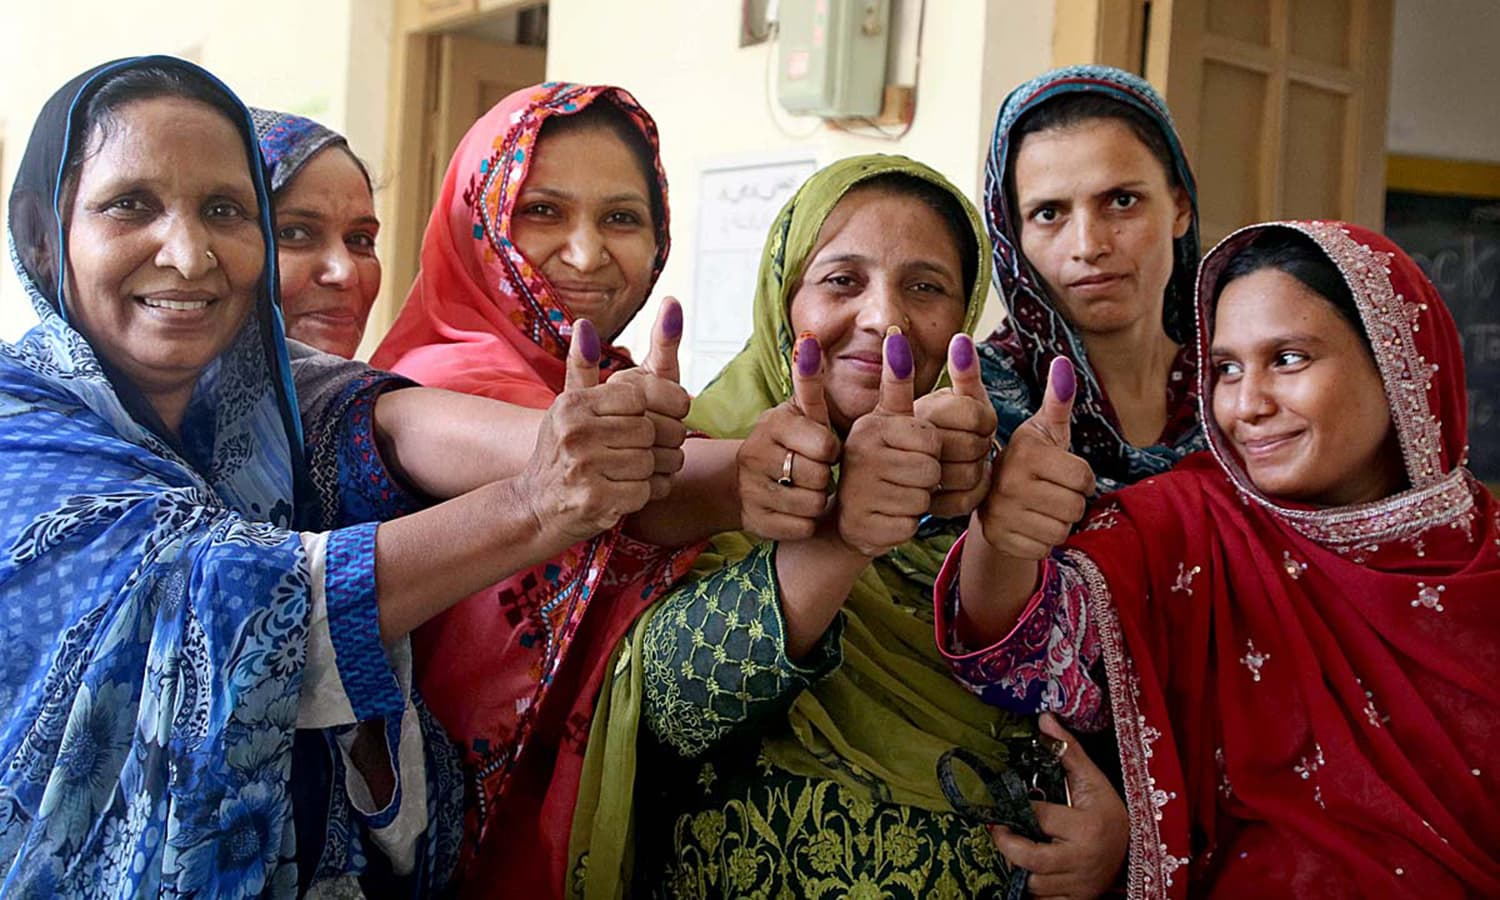 Voters displaying their marked thumbs after casting their ballots at a polling station in Qasimabad, Hyderabad. — APP